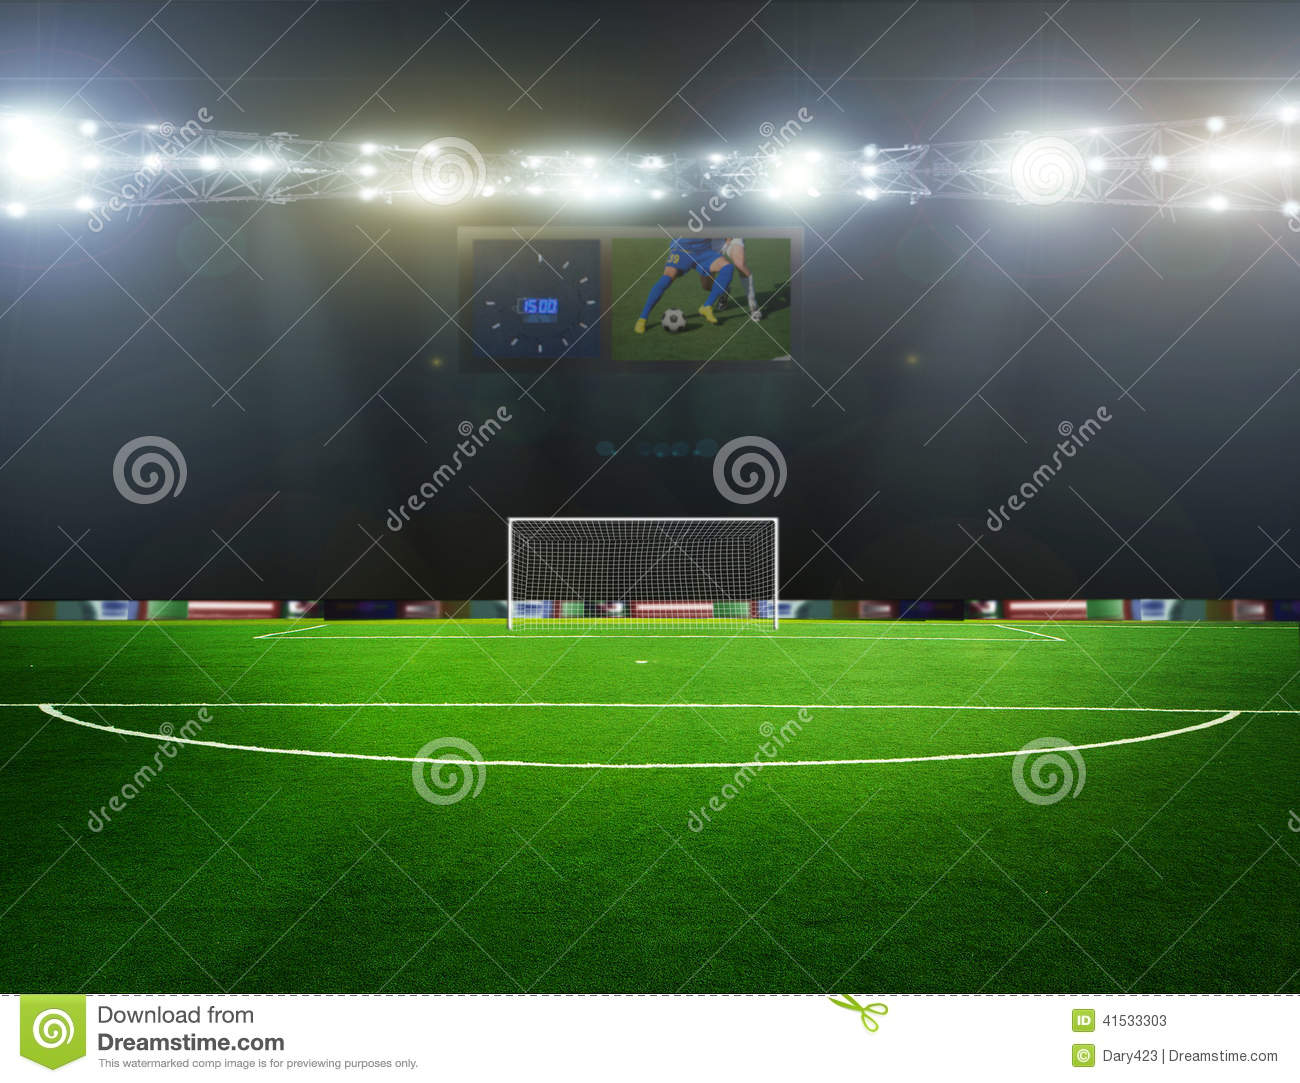 On The Stadium Abstract Football Or Soccer Backgrounds: Soccer Bal.football, Stock Image. Image Of Meadow, Flash